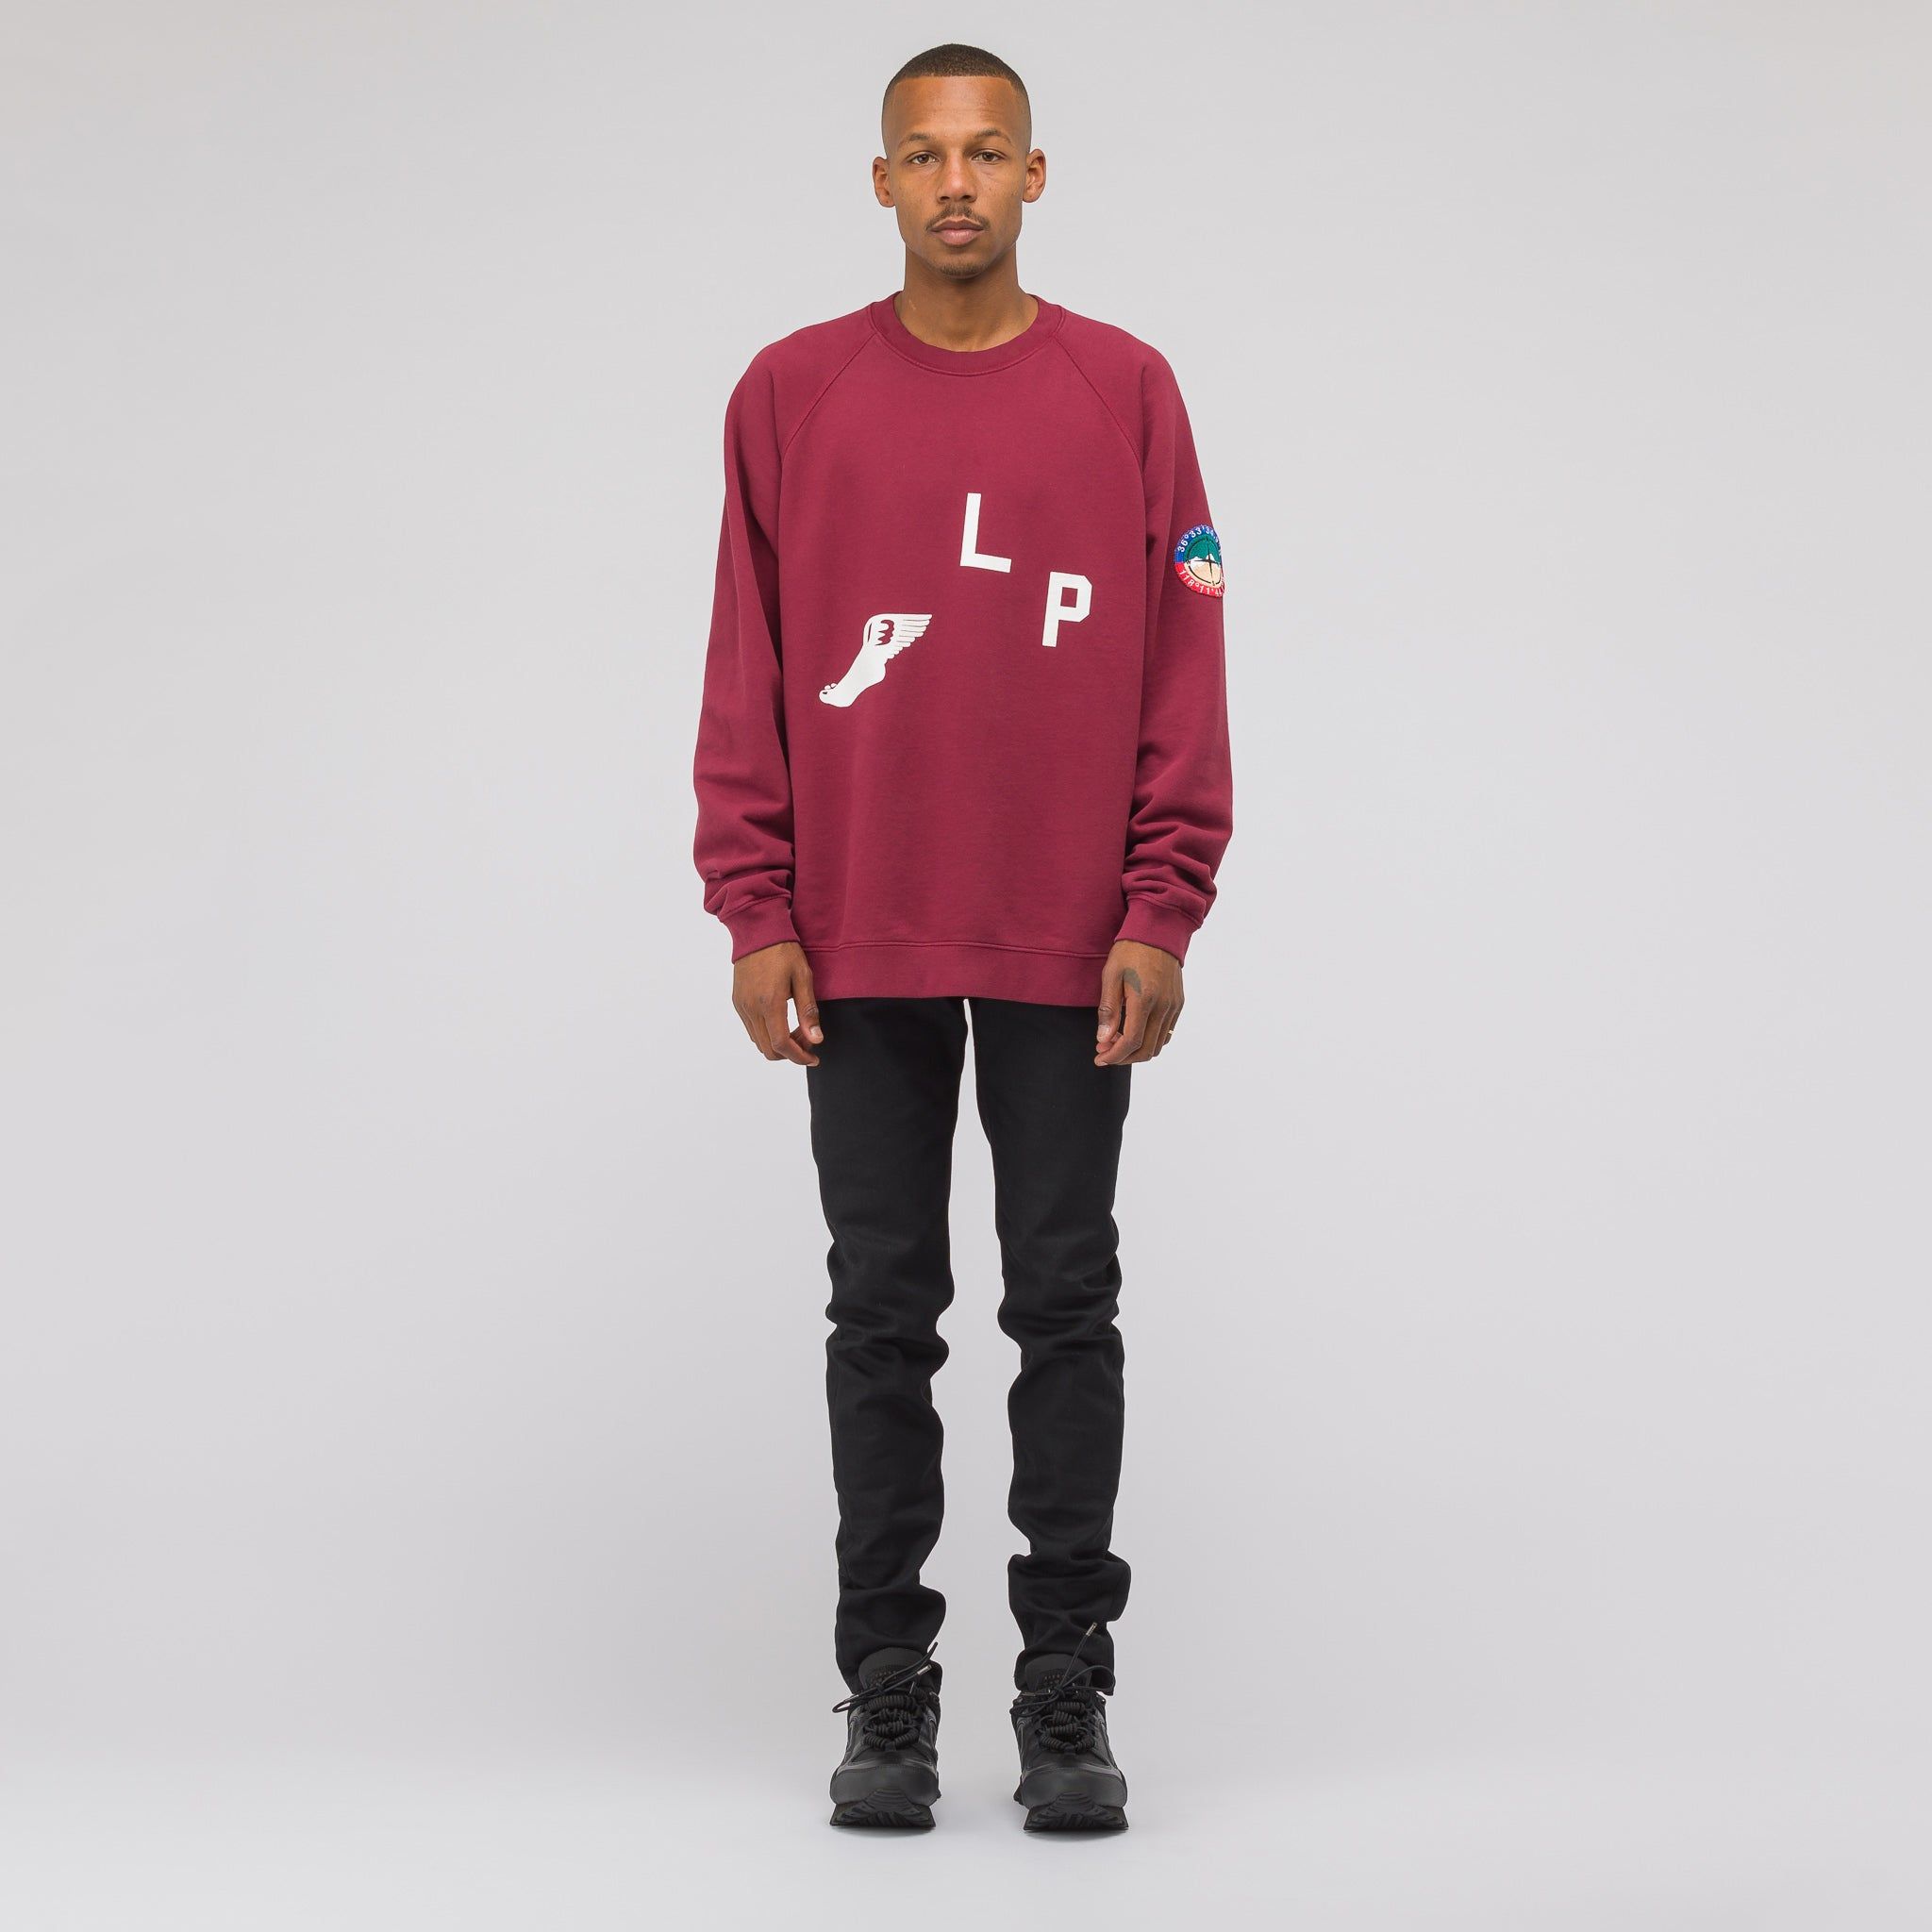 Cross Country Sweatshirt in Burgundy